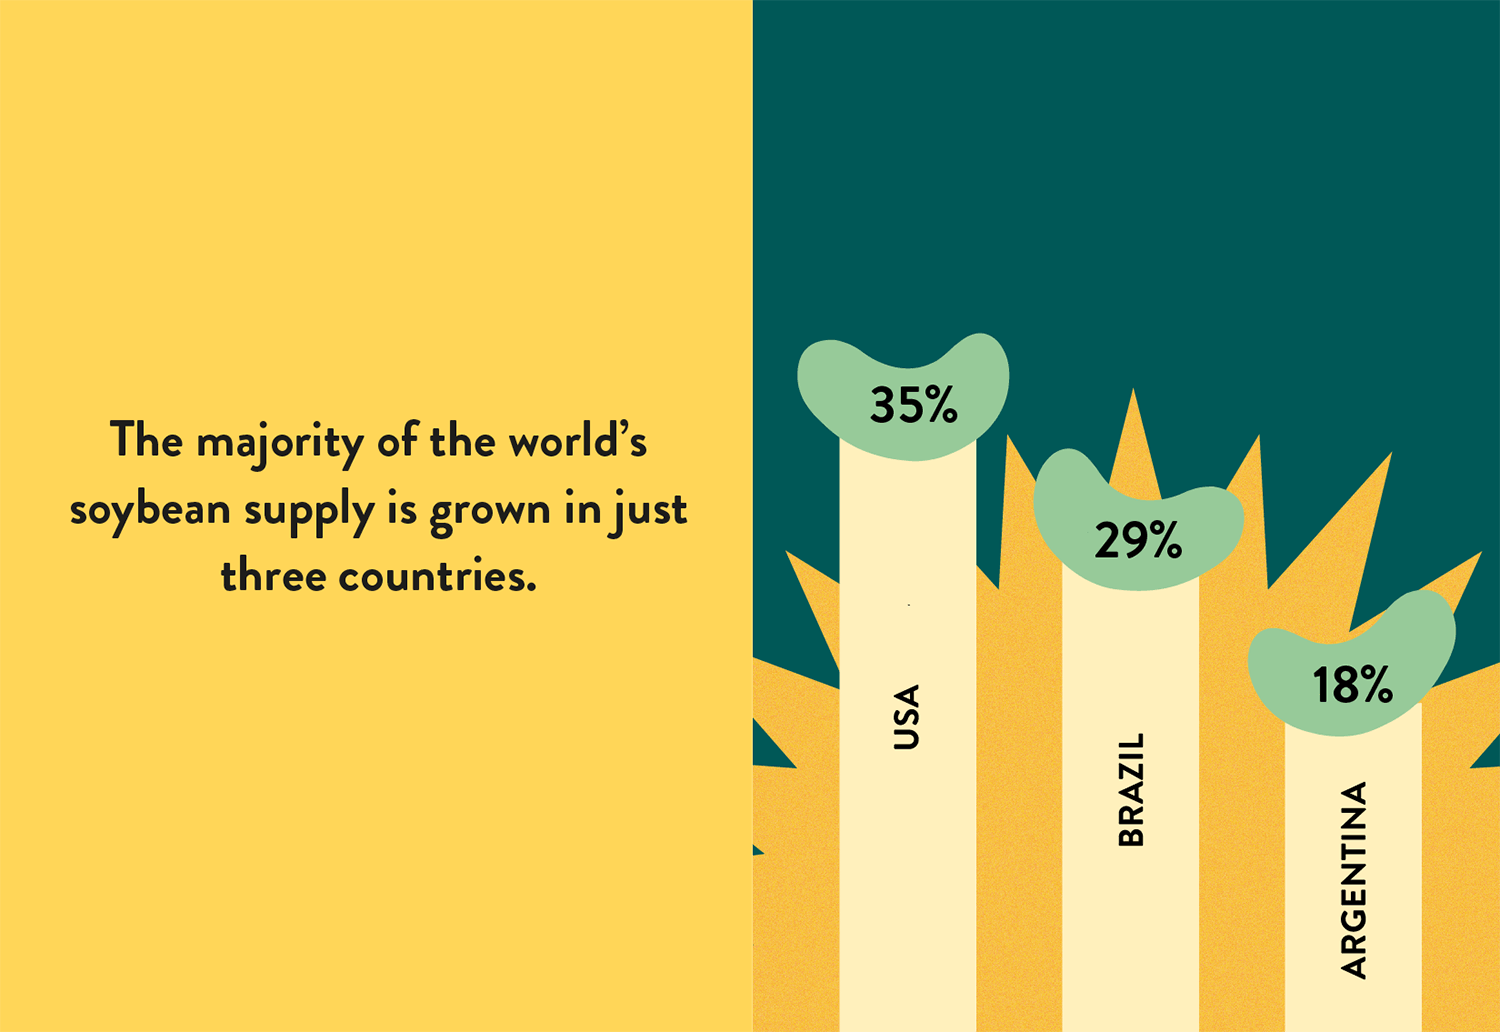 infographic showing main three countries growing soy